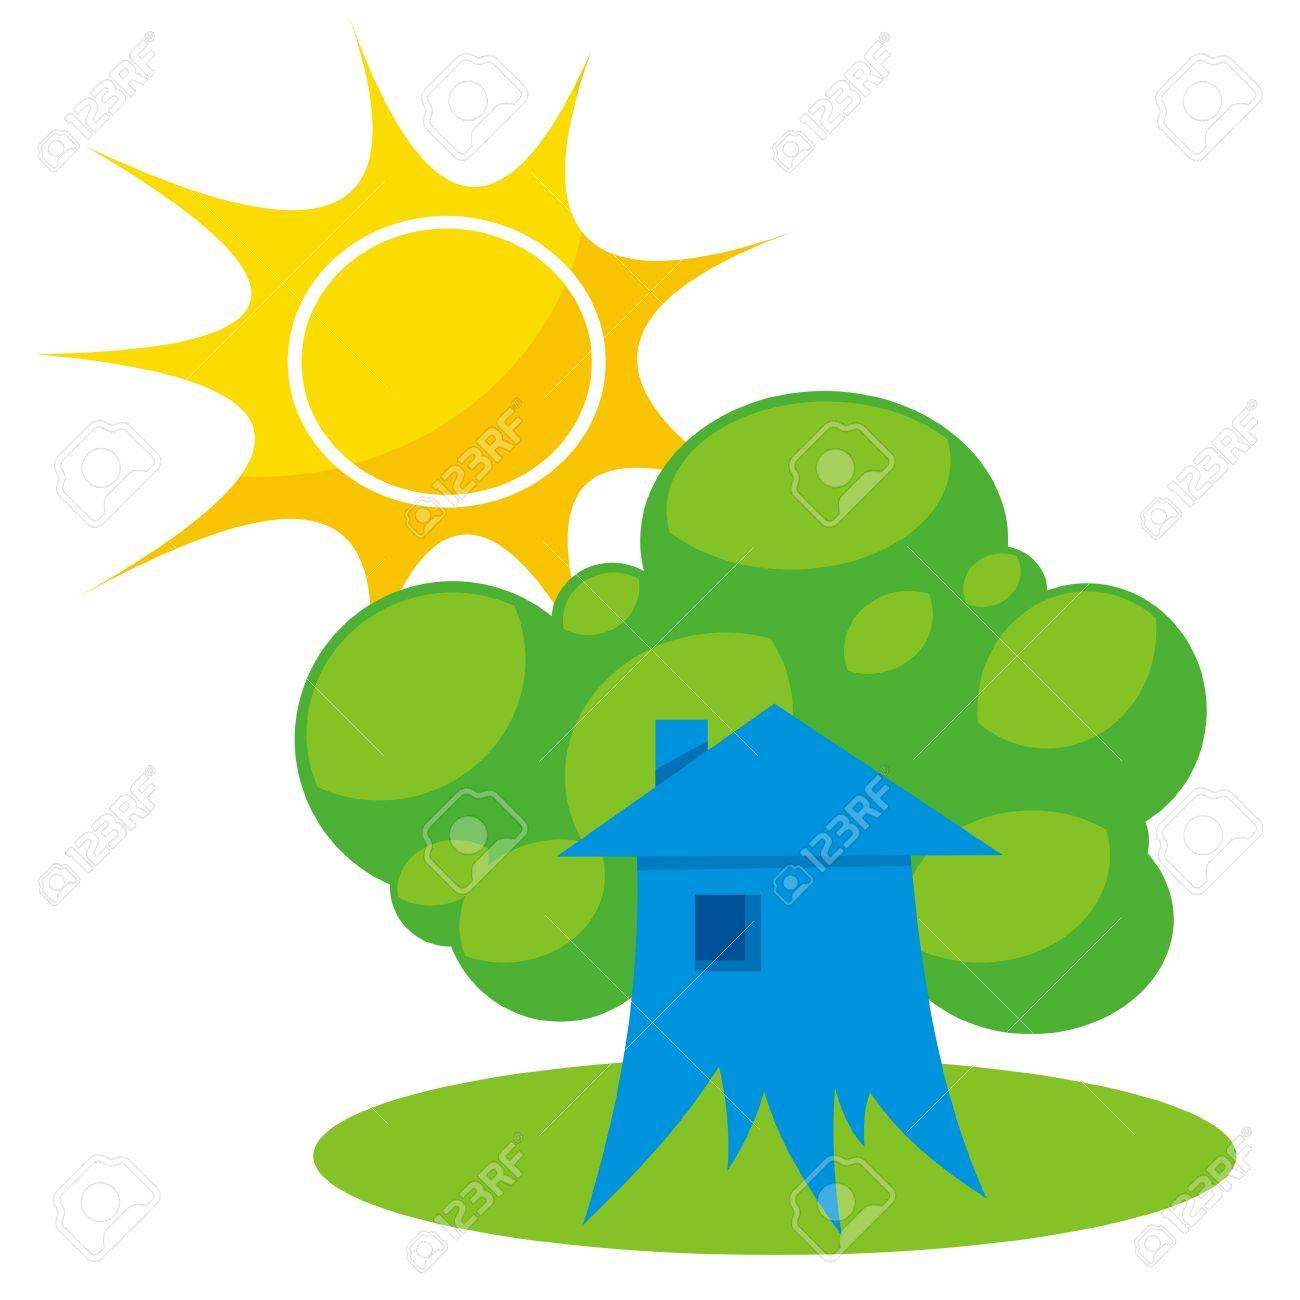 Greener home icon with tree like building and sun - 5776846